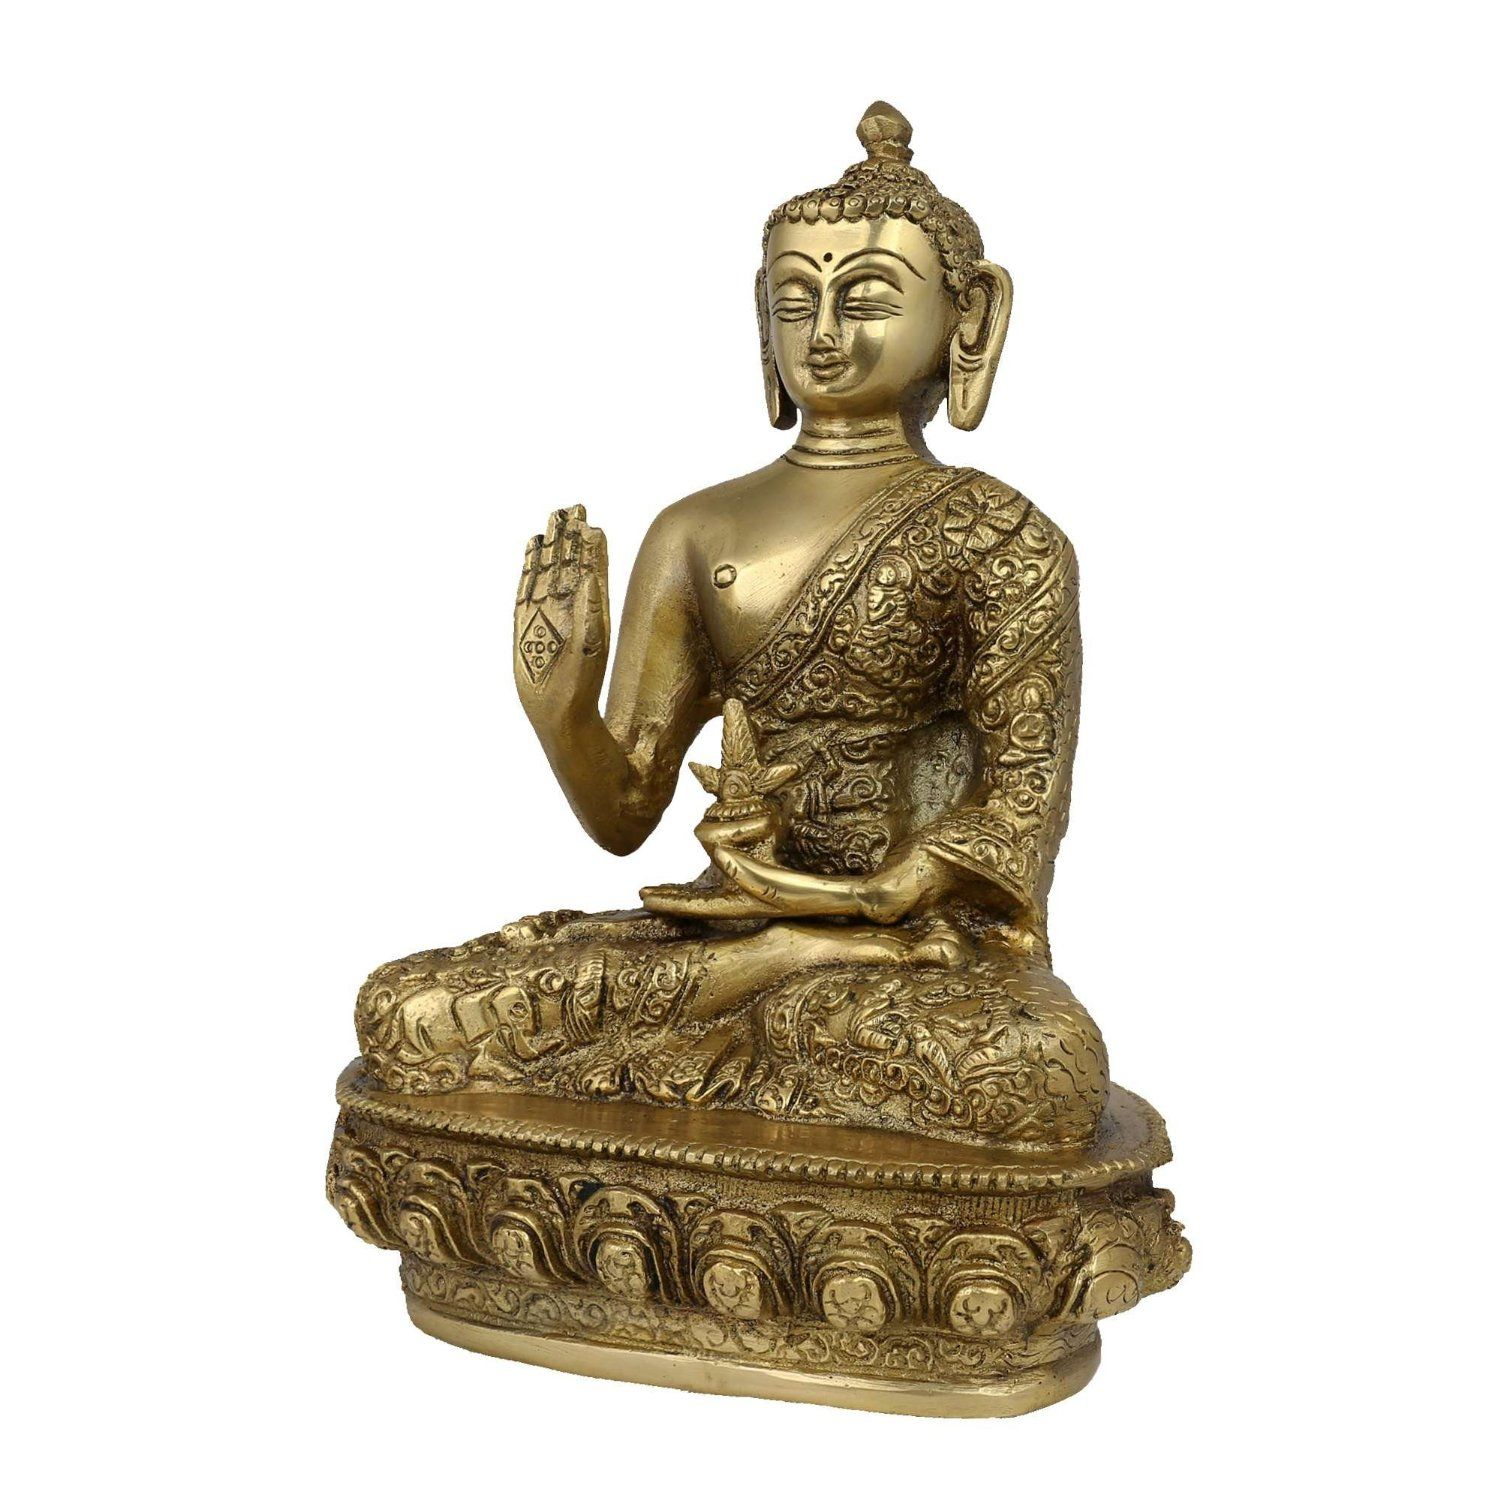 near city statues pictures decorative income statue office buddha photos giftware centre home bzdet evershine tax gwalior gift decor